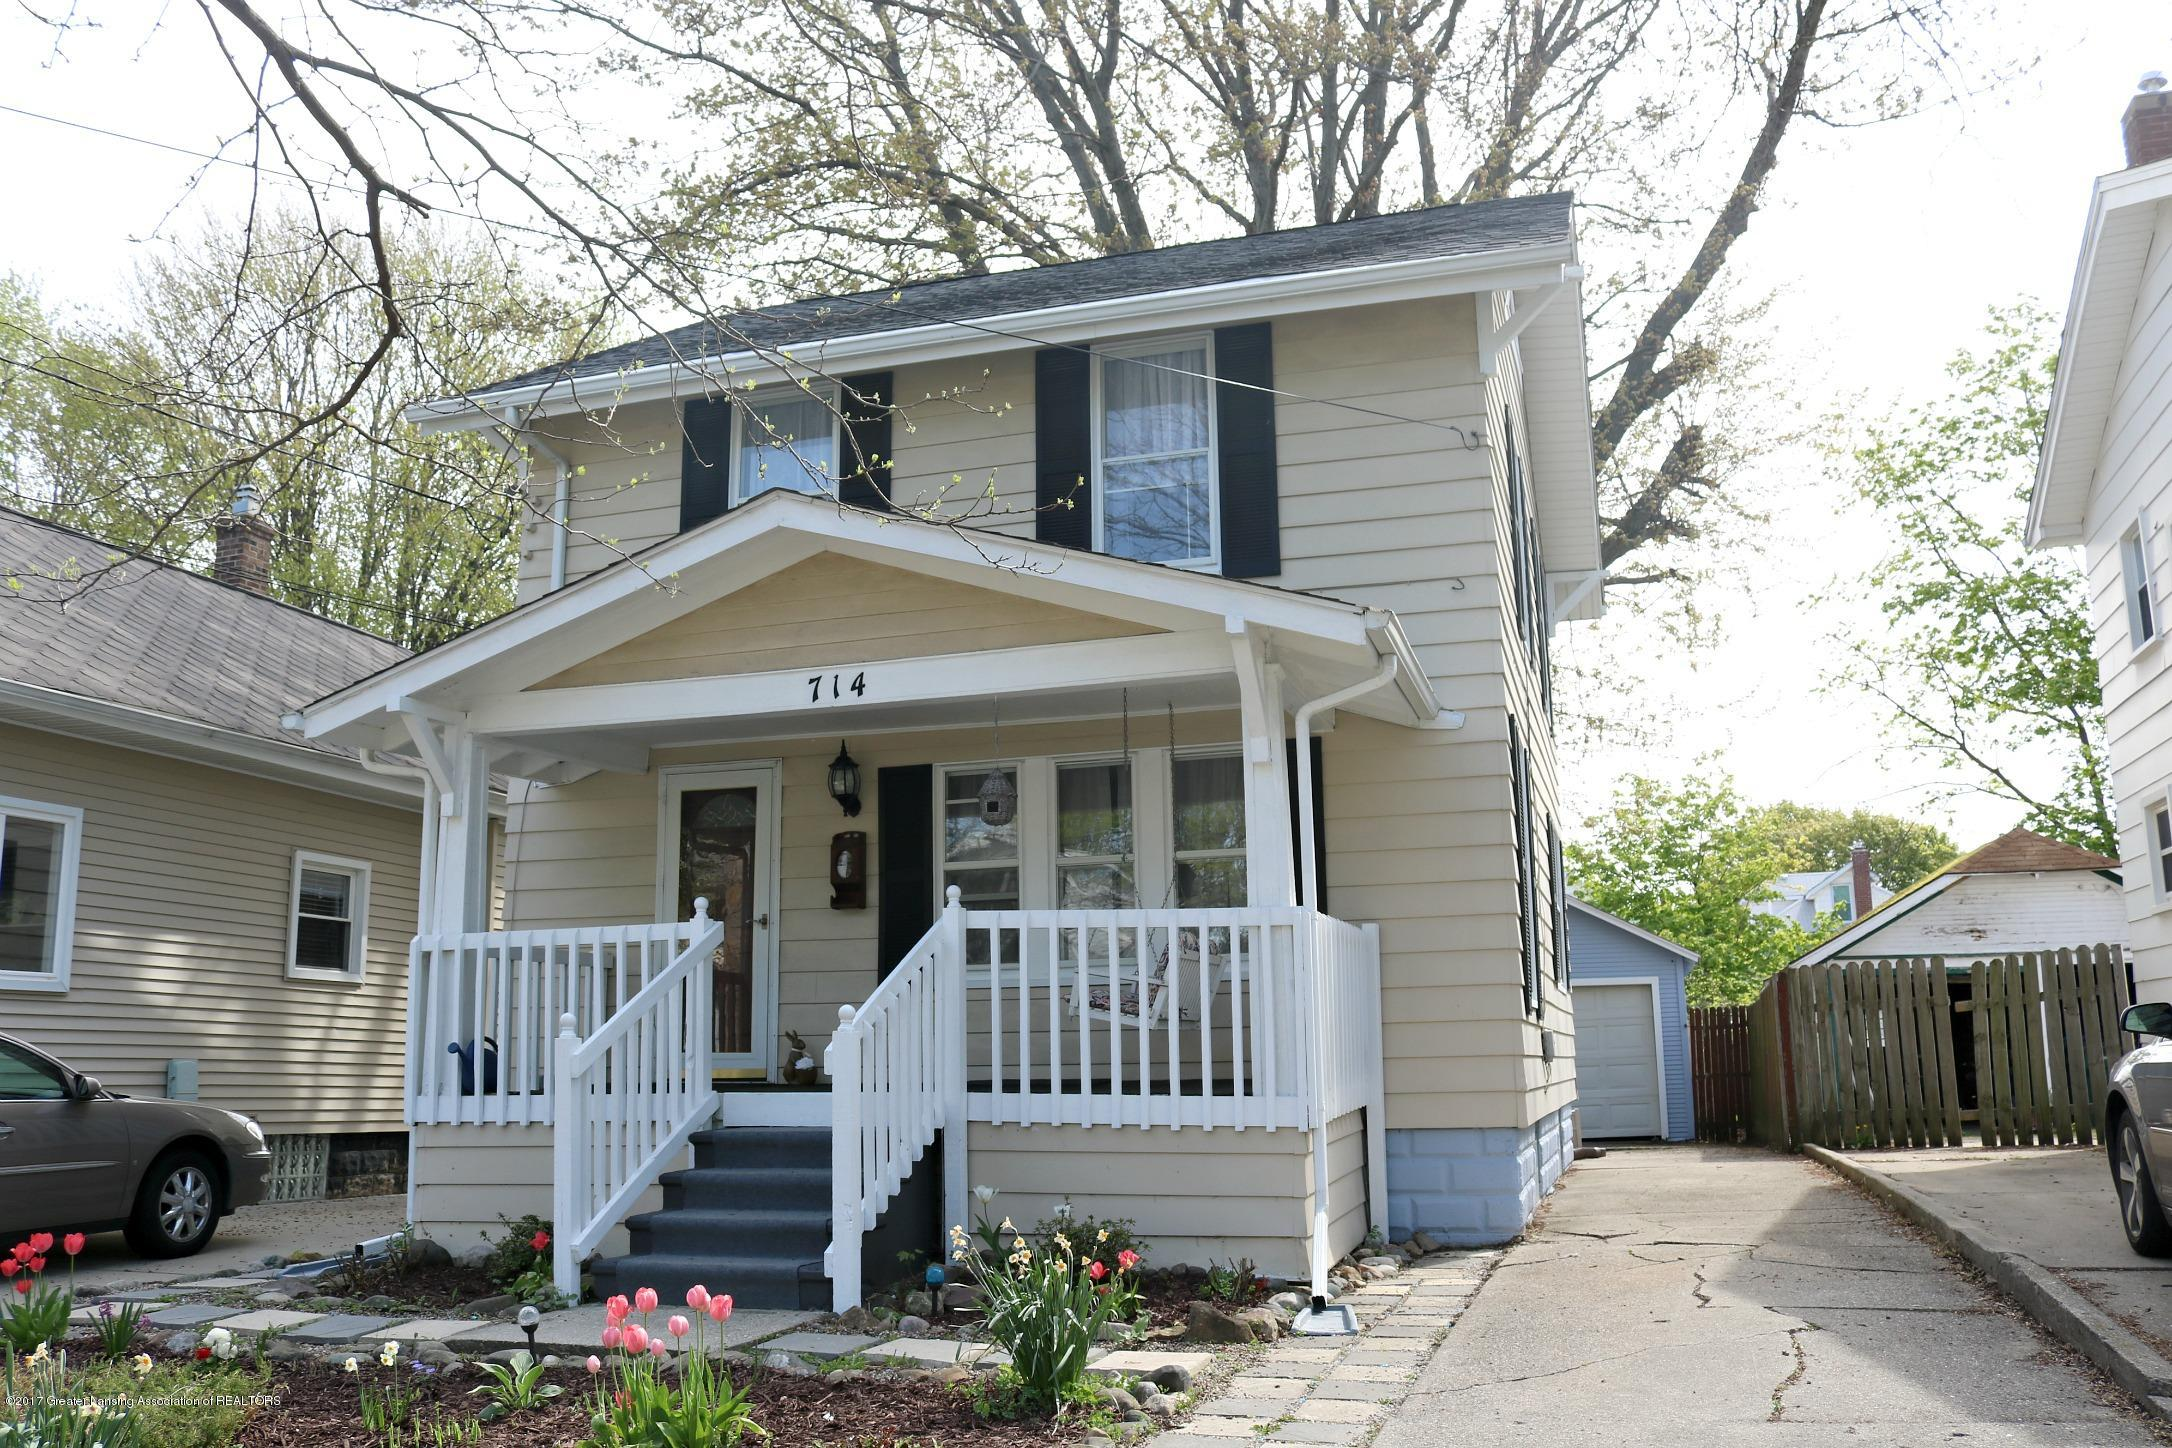 714 N Magnolia Ave - Front - 1